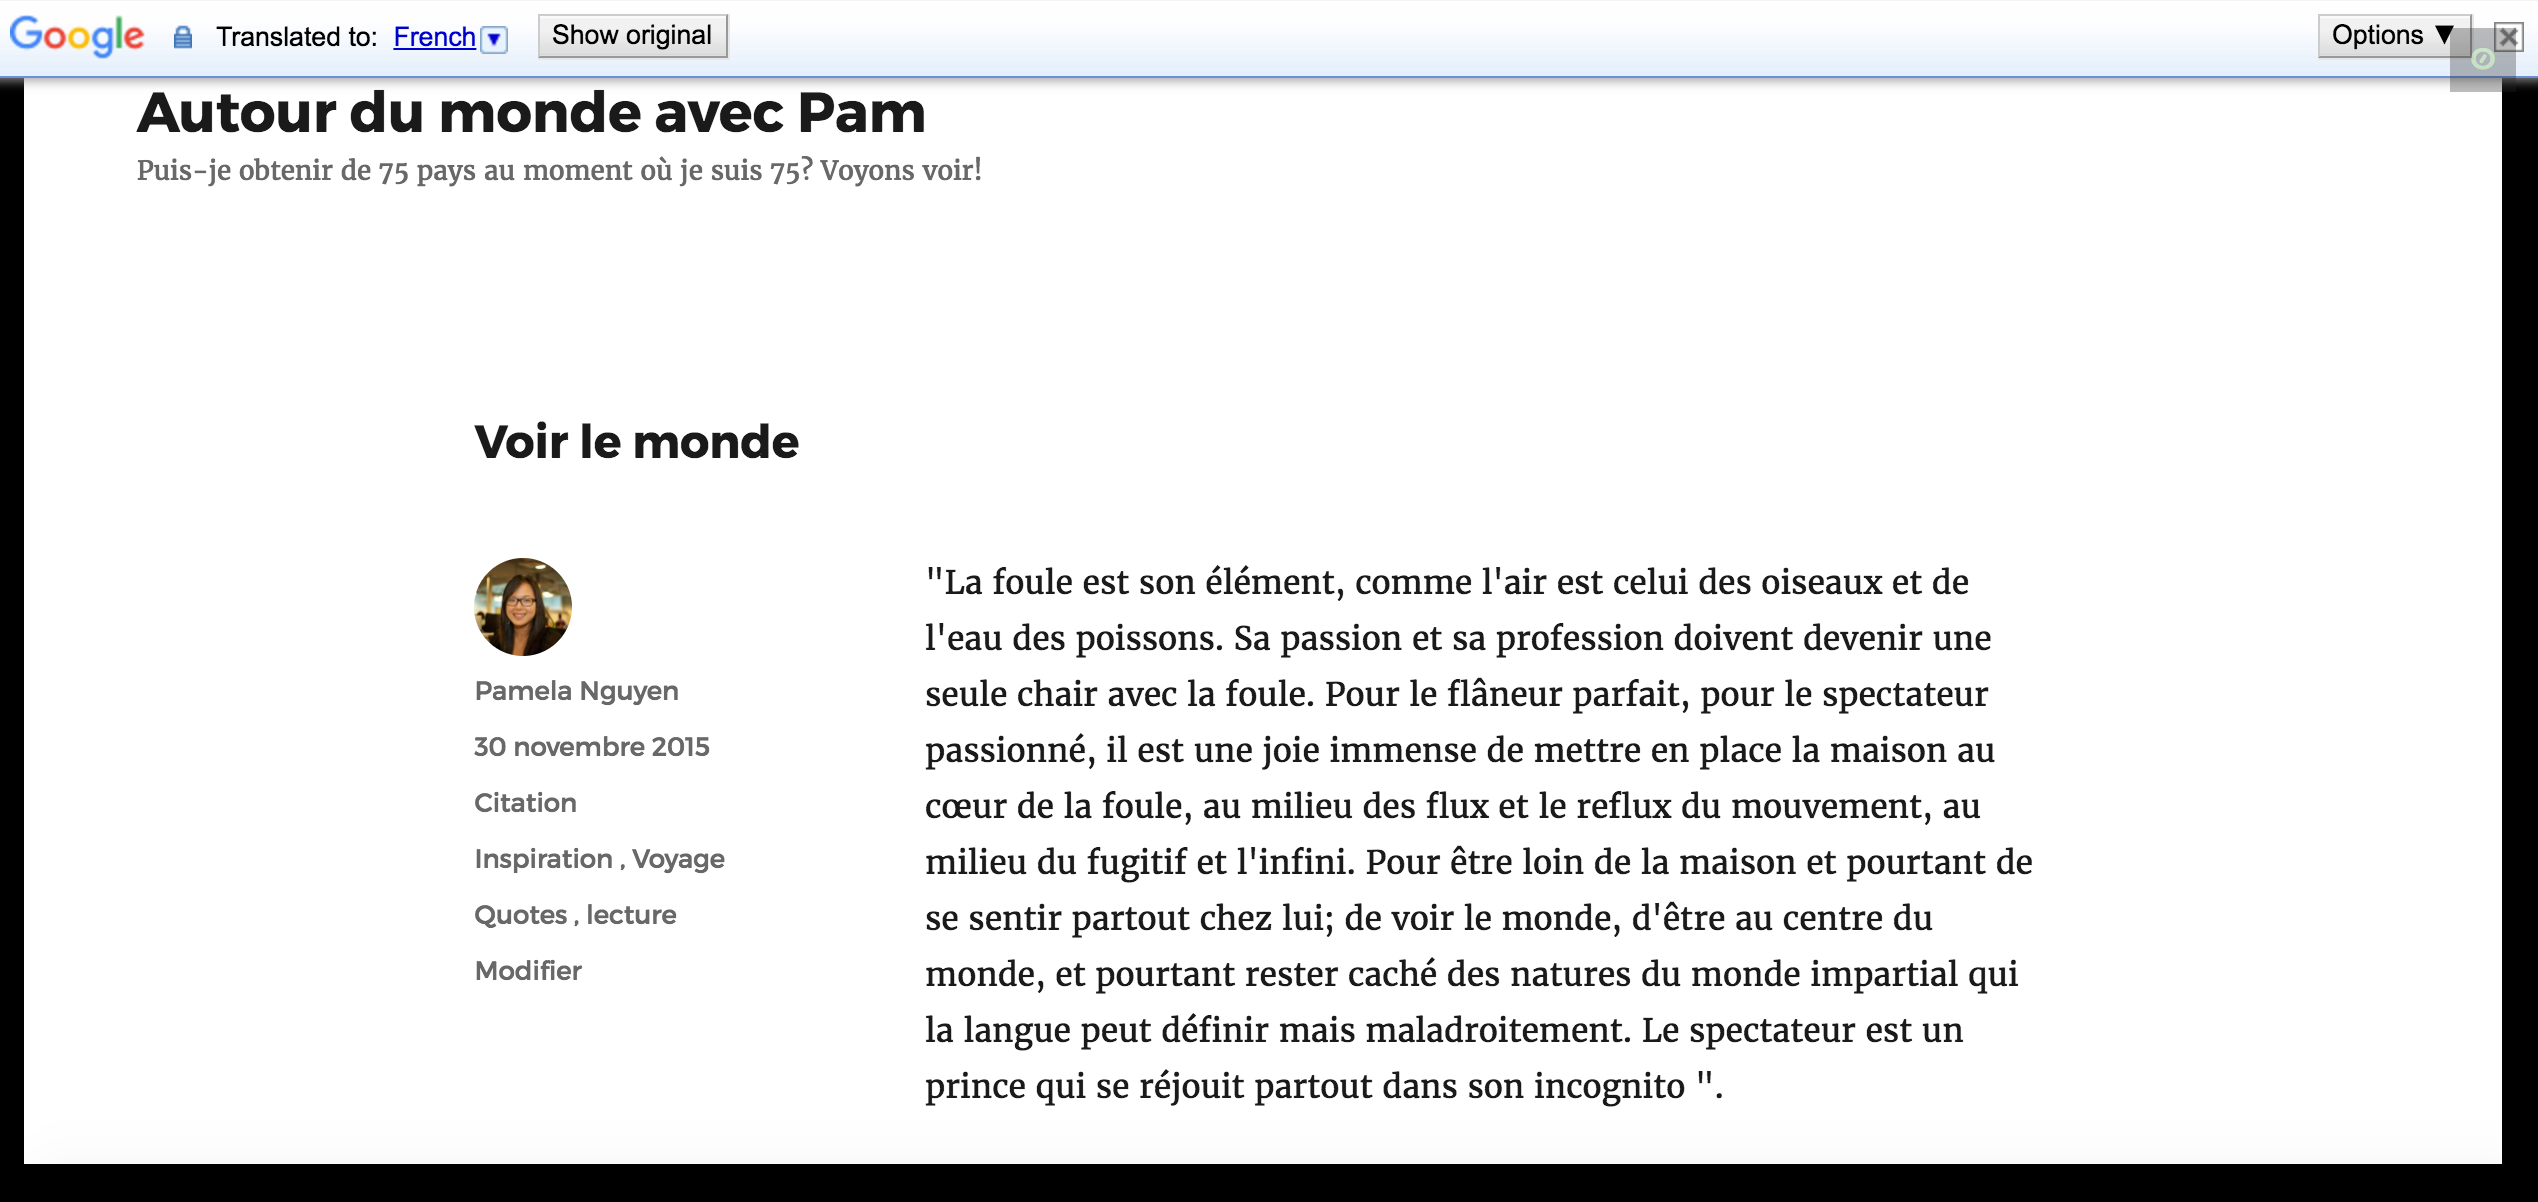 The same blog post, translated into French with the Google Translate Widget.